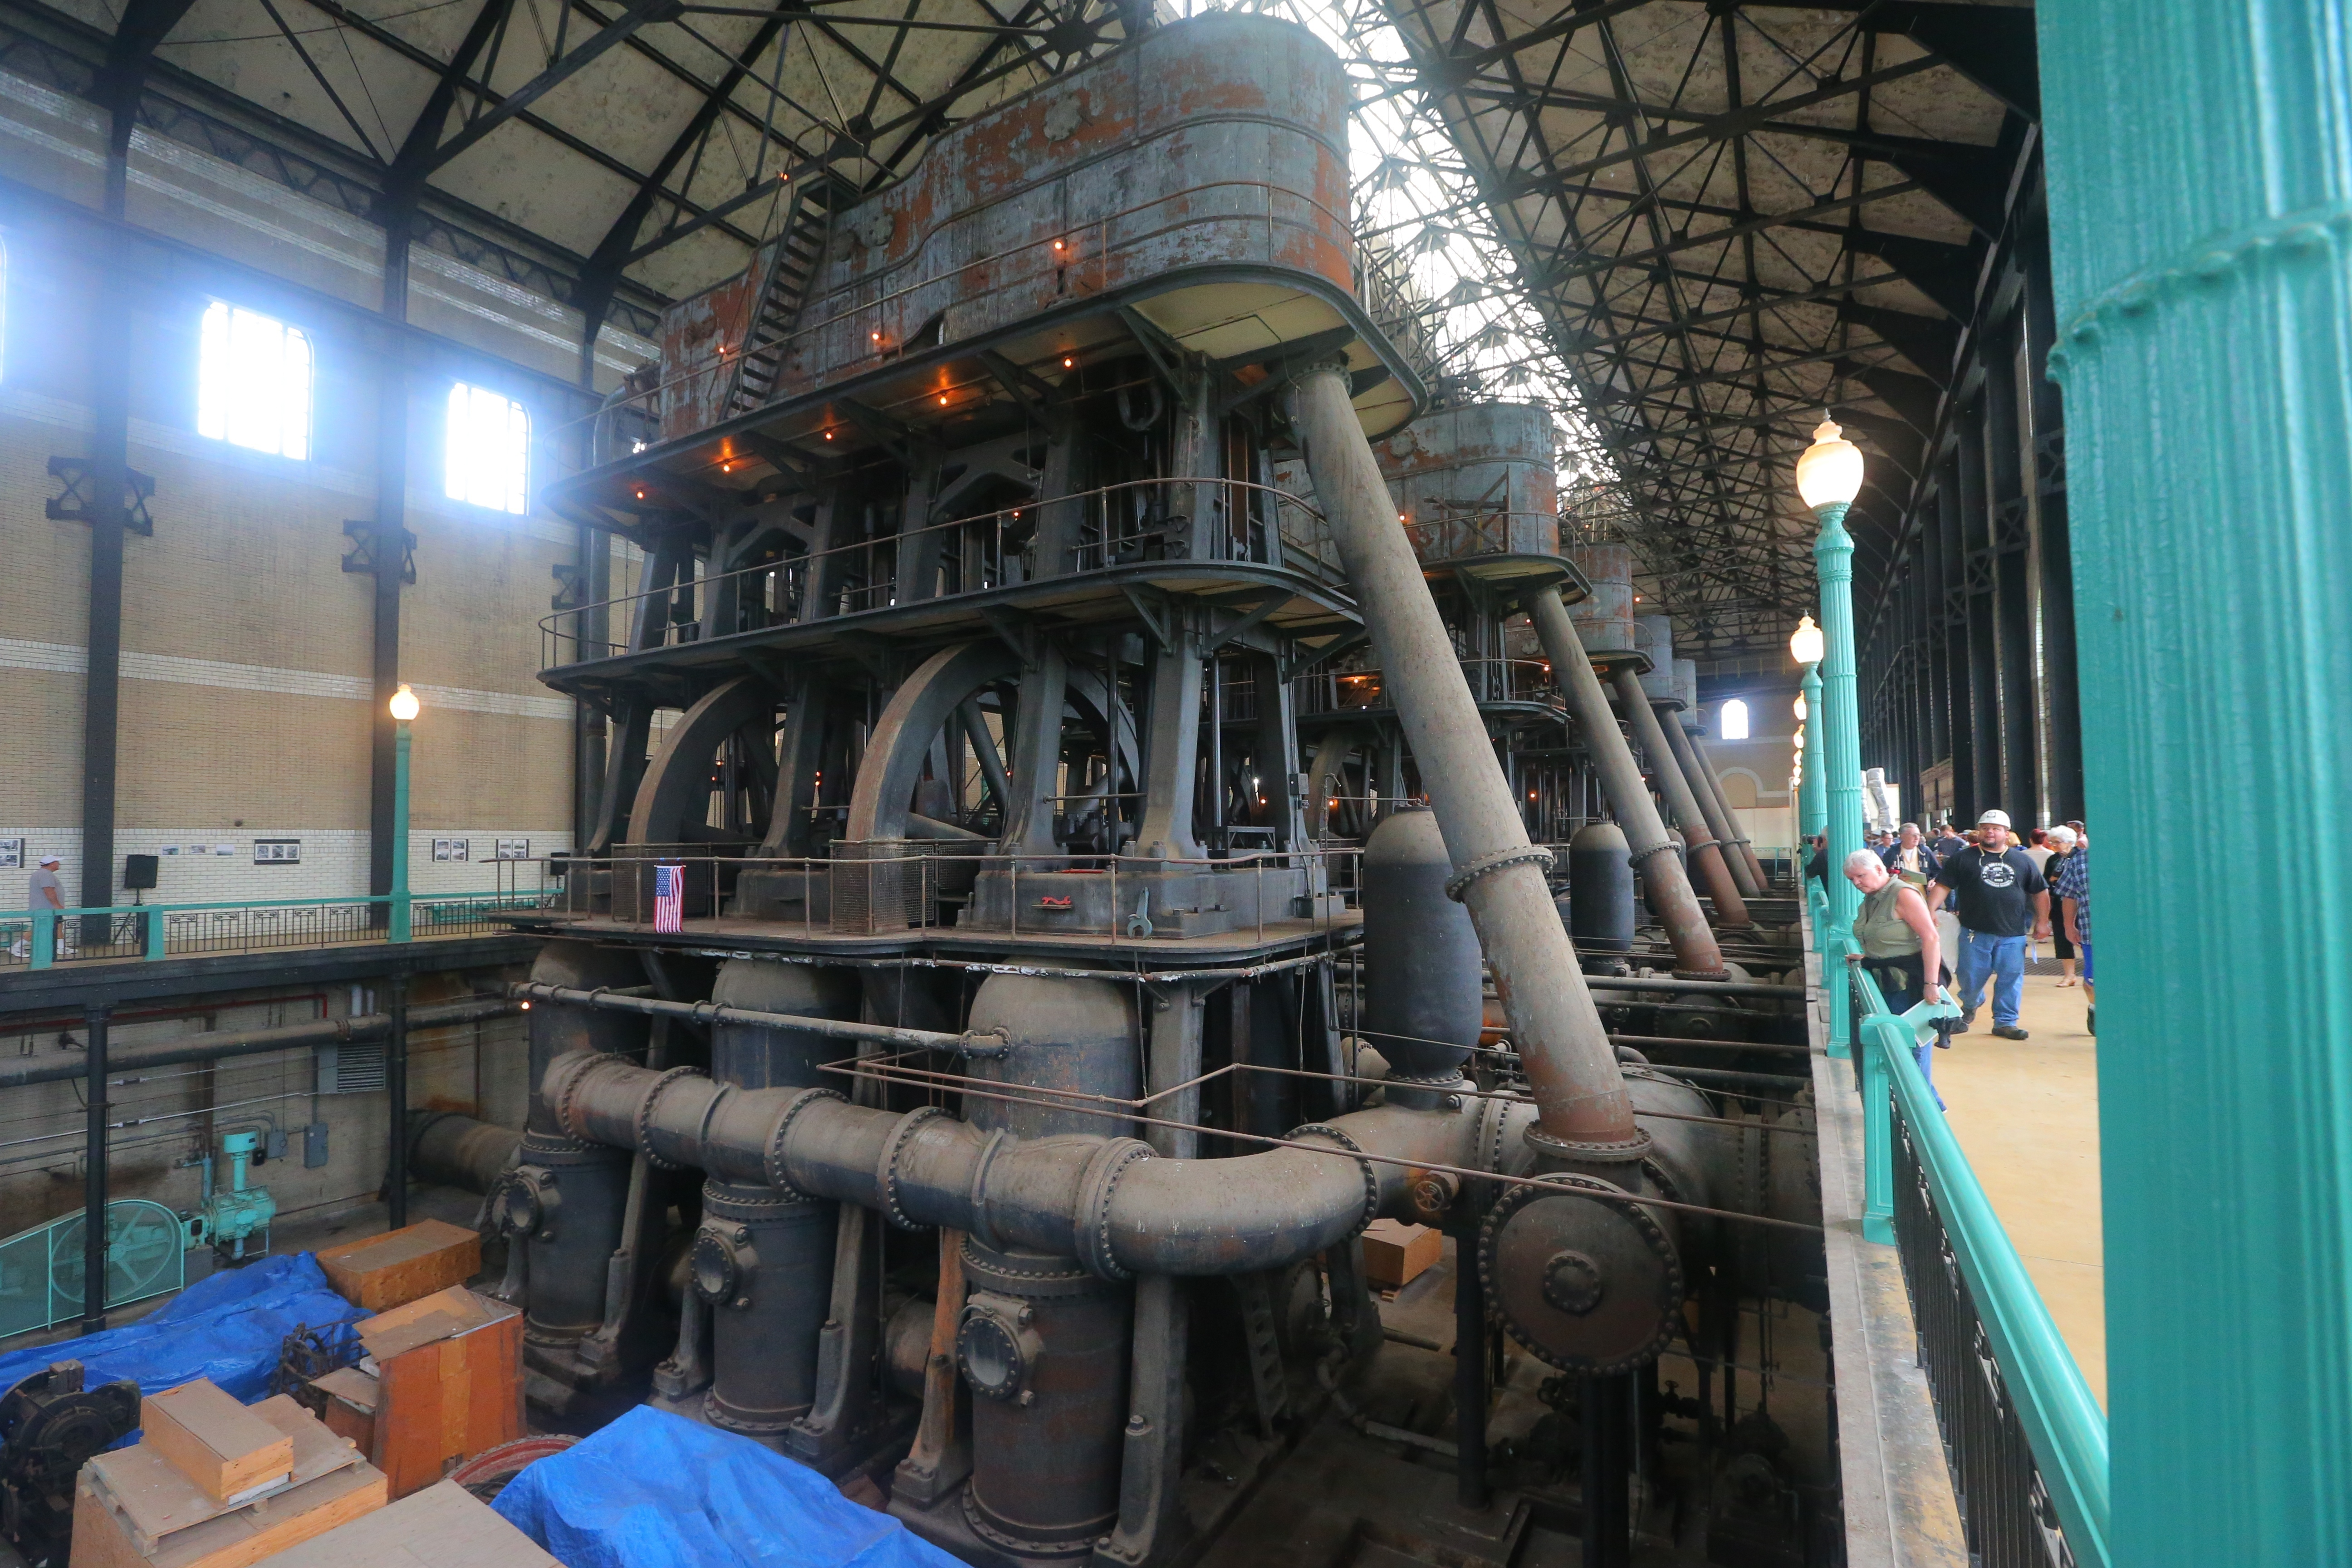 A public tour of the Col. Francis G. Ward Pumping Station on Porter Ave. on Saturday highlighted the five six-story-high steam pumps. The gigantic steam pumps were a feat when they were built in 1915, and they still have the power to impress today. (John Hickey/Buffalo News)